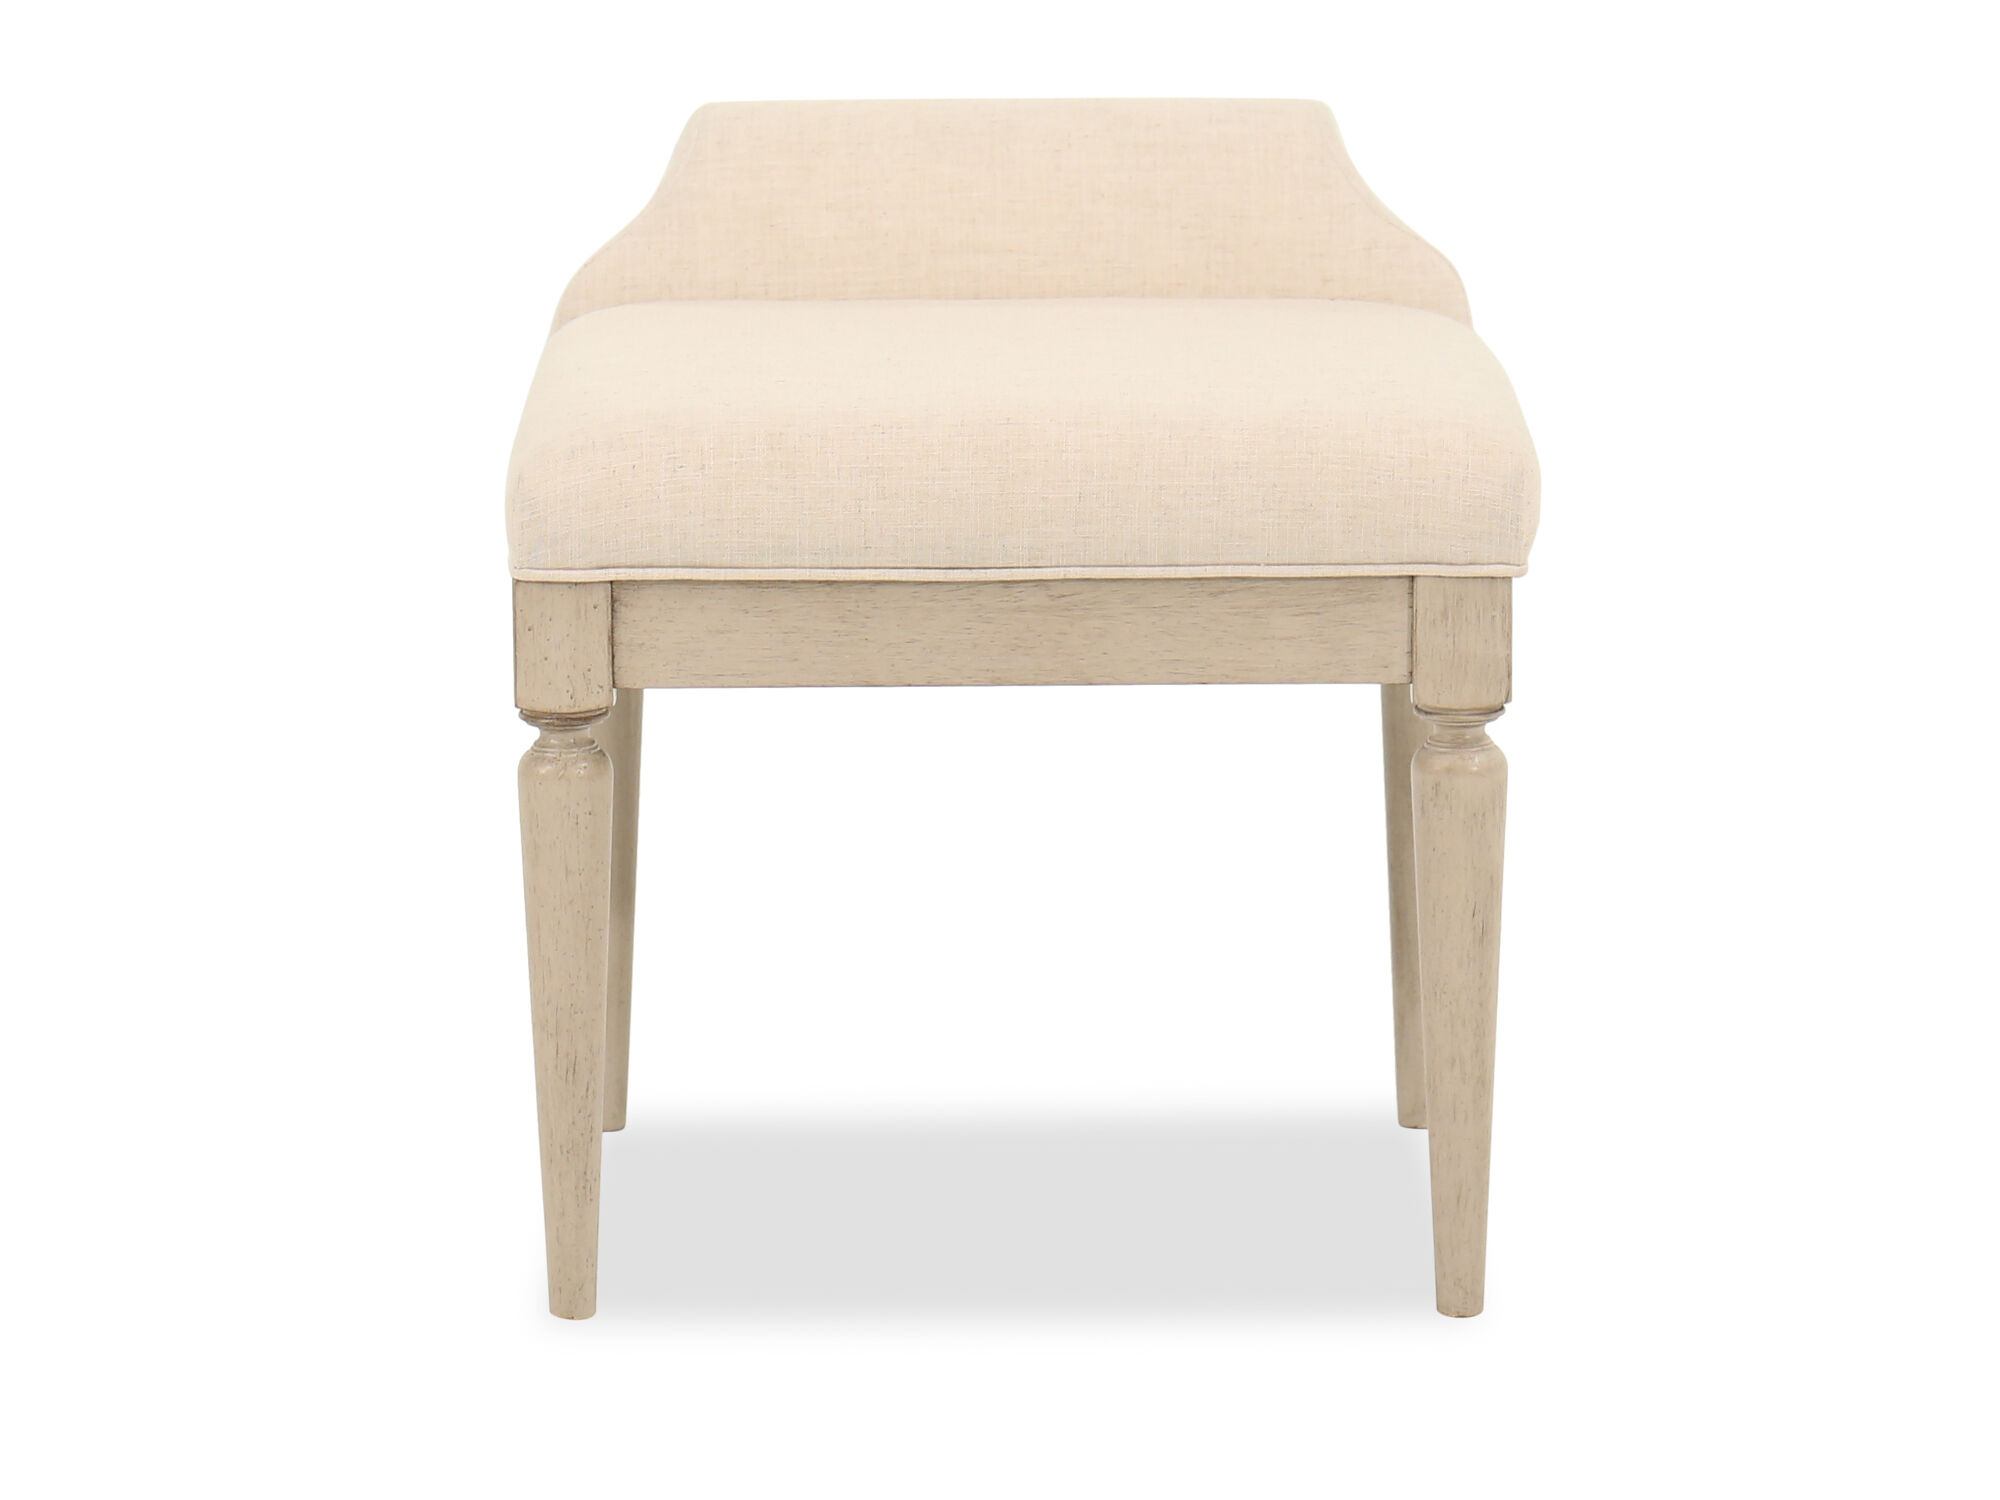 Vanity stools with back Wheels Low Back Transitional Youth Vanity Stool In Beige Mathis Brothers Furniture Mathis Brothers Low Back Transitional Youth Vanity Stool In Beige Mathis Brothers